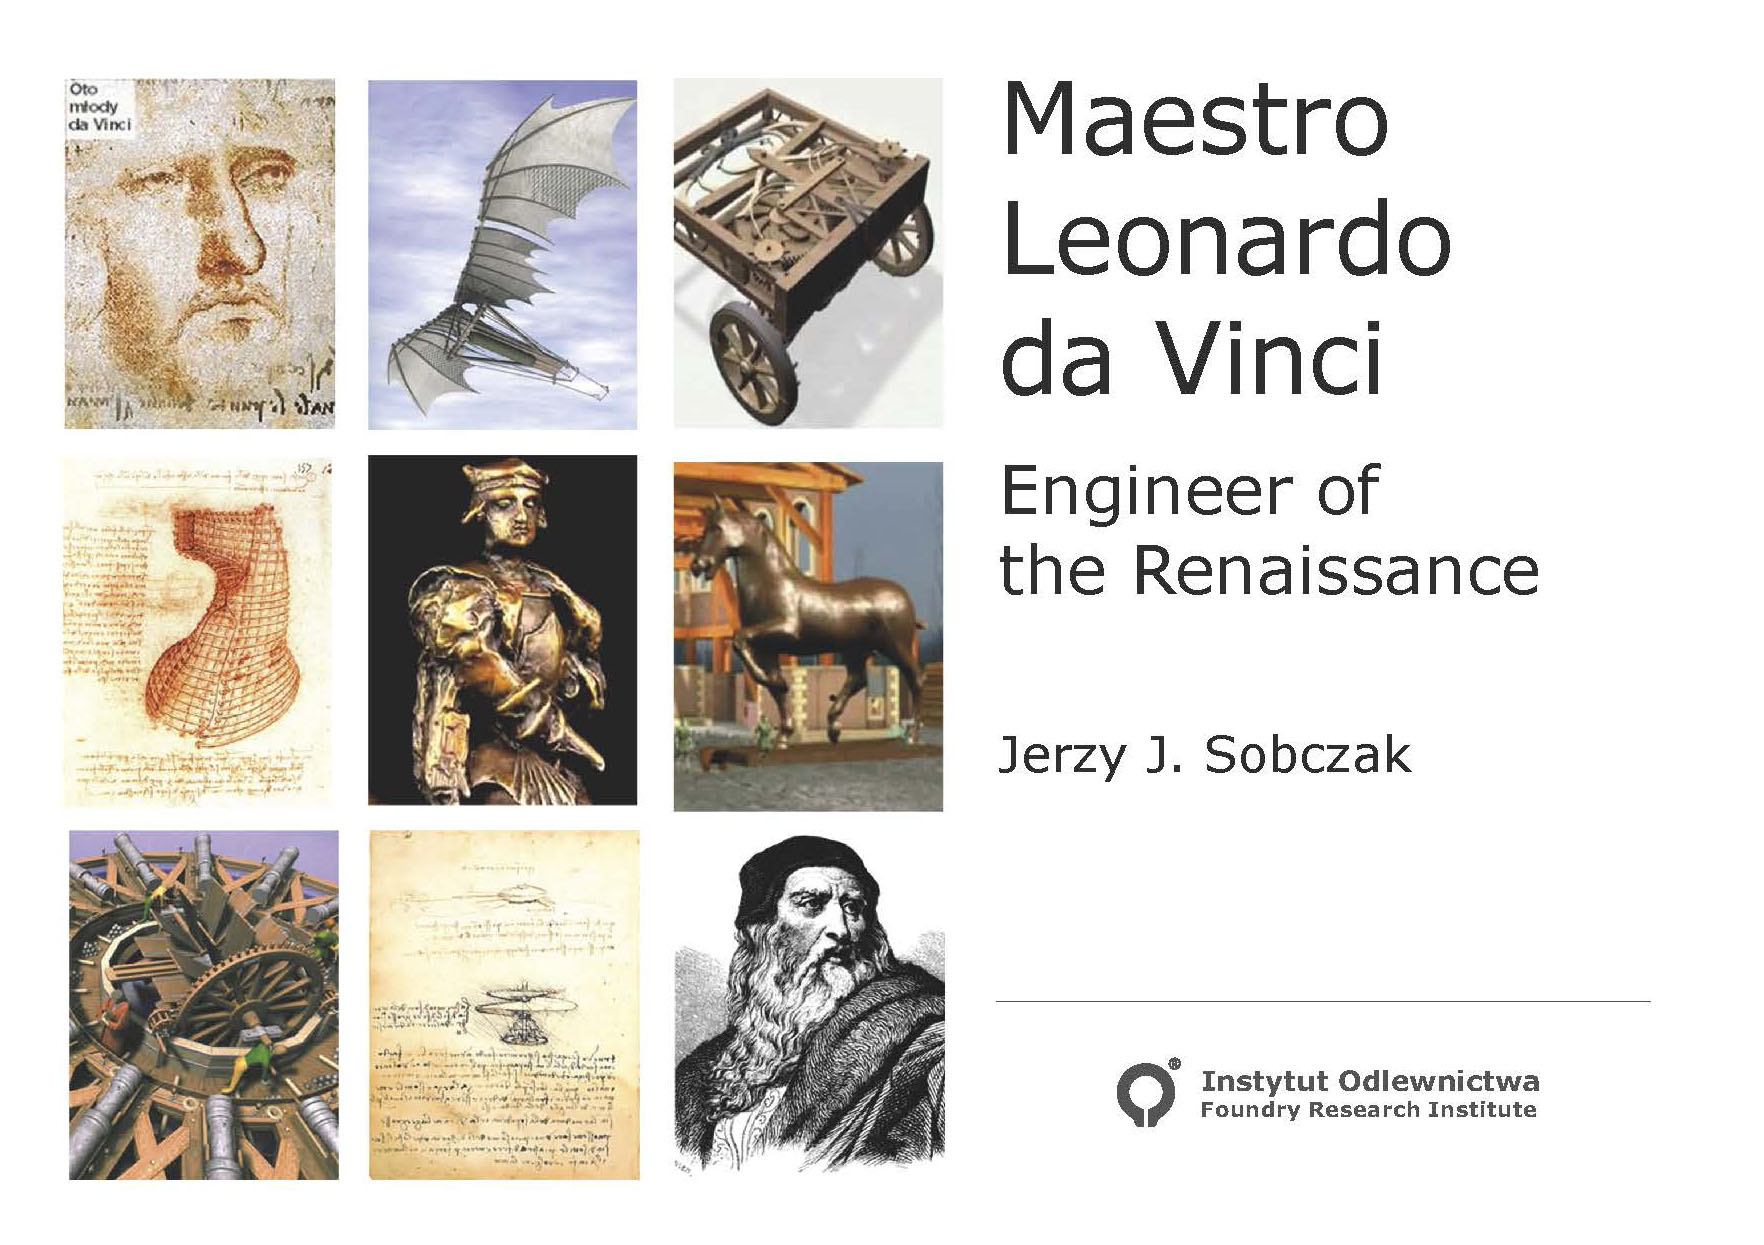 Maestro Leonardo da Vinci. Engineer of the Renaissance